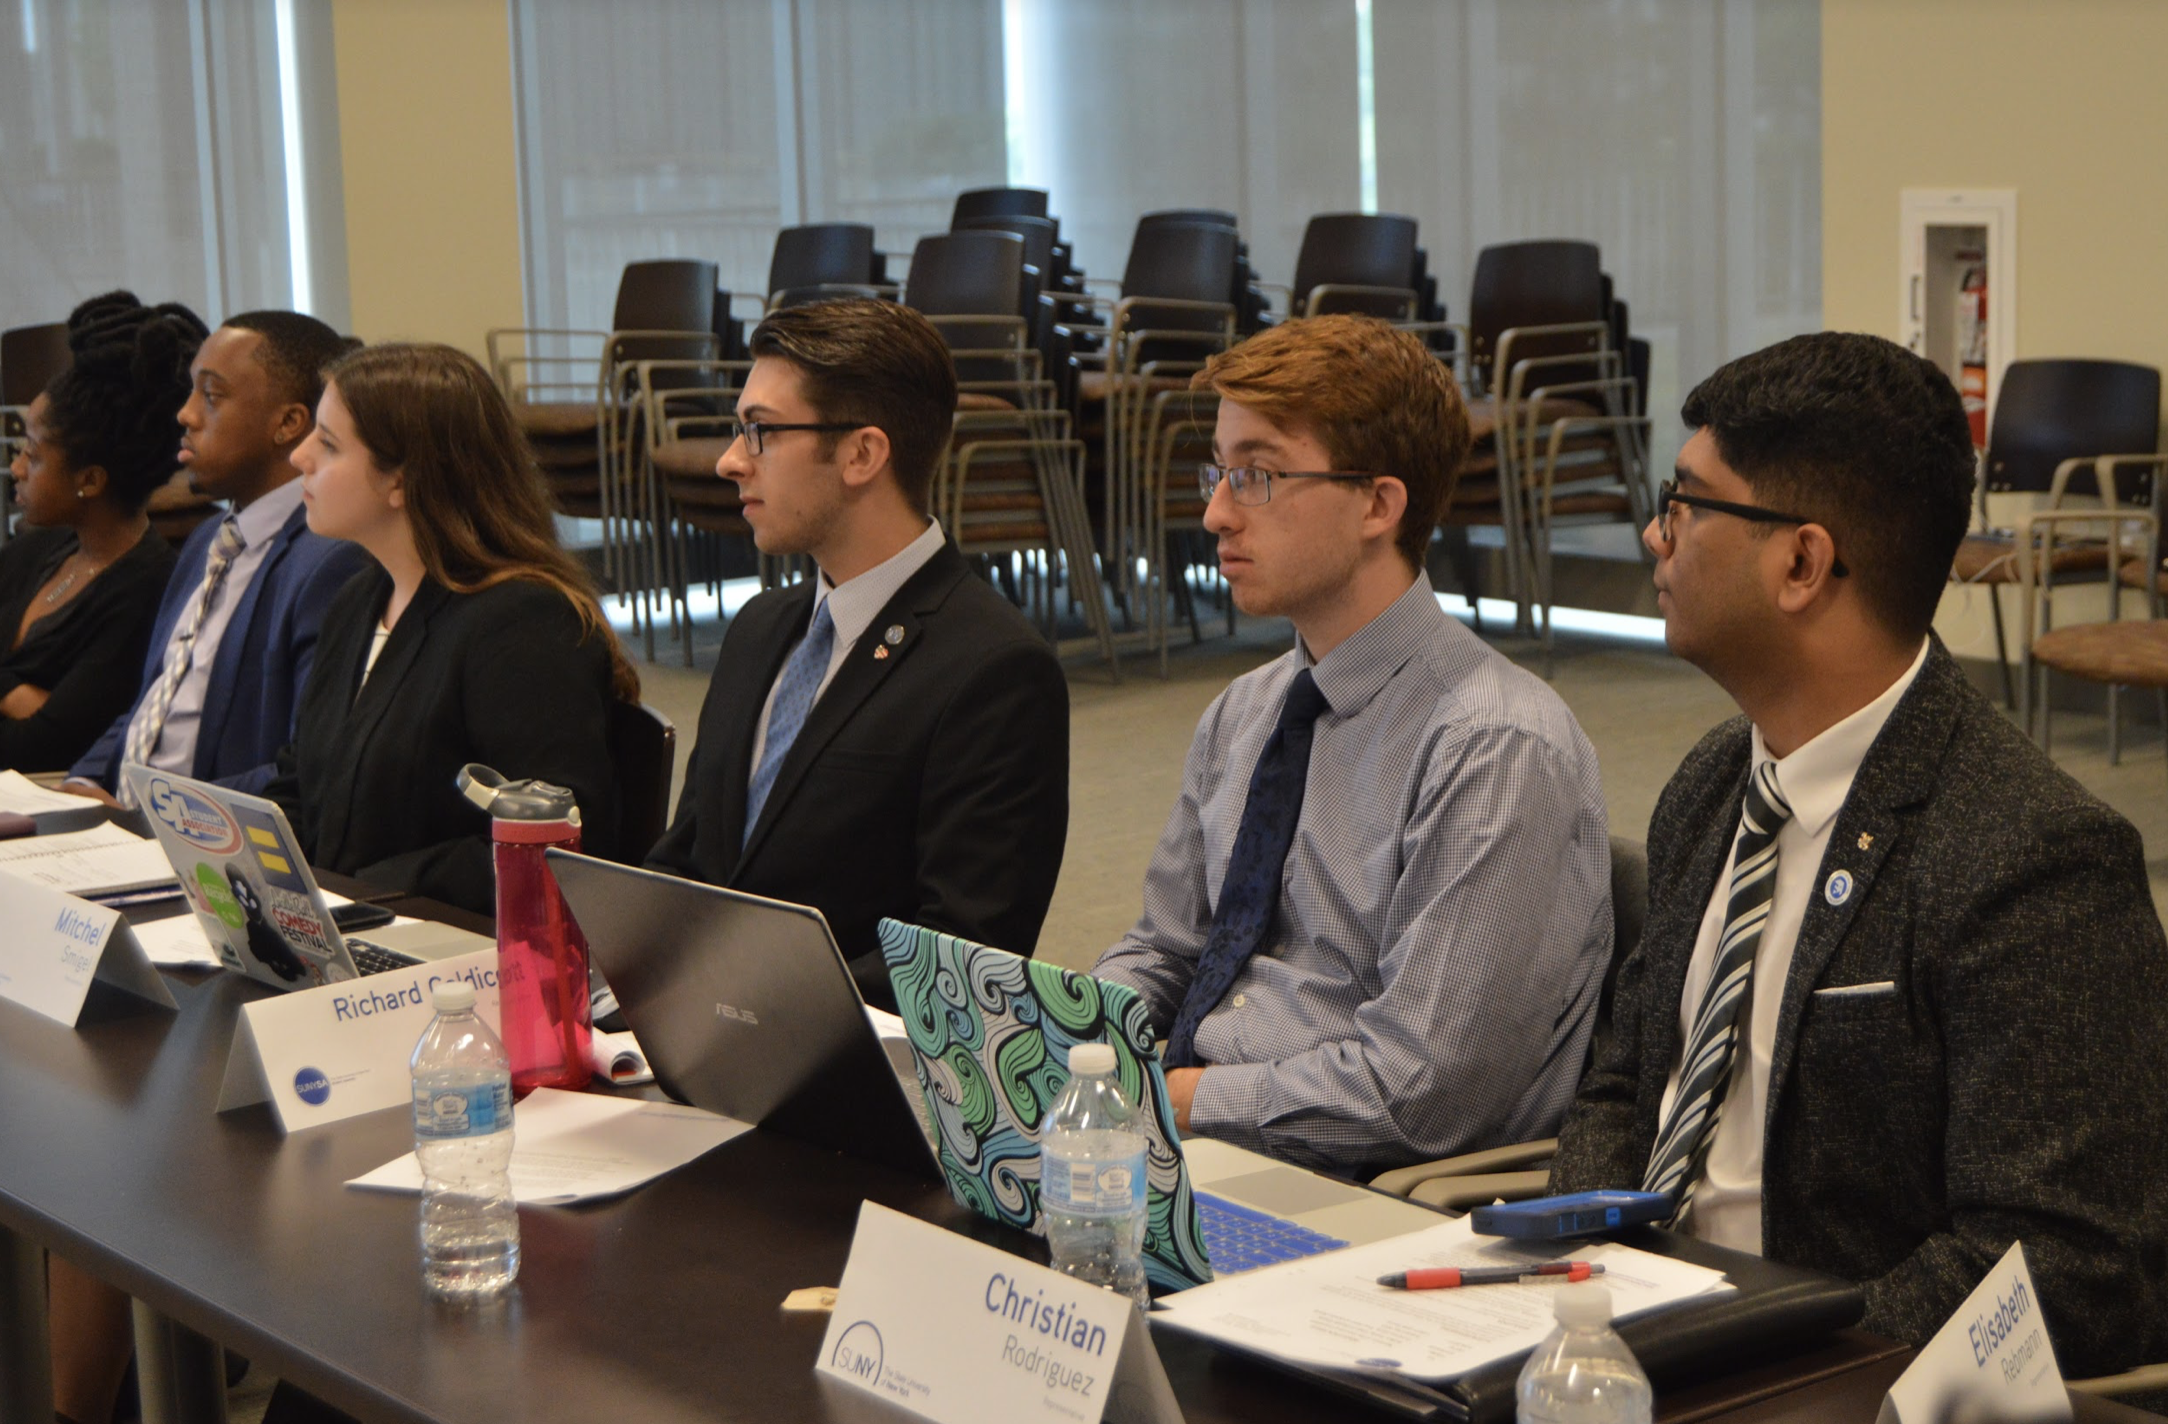 SUNY SA Representatives listening to a proposal during the business meeting at the University at Albany